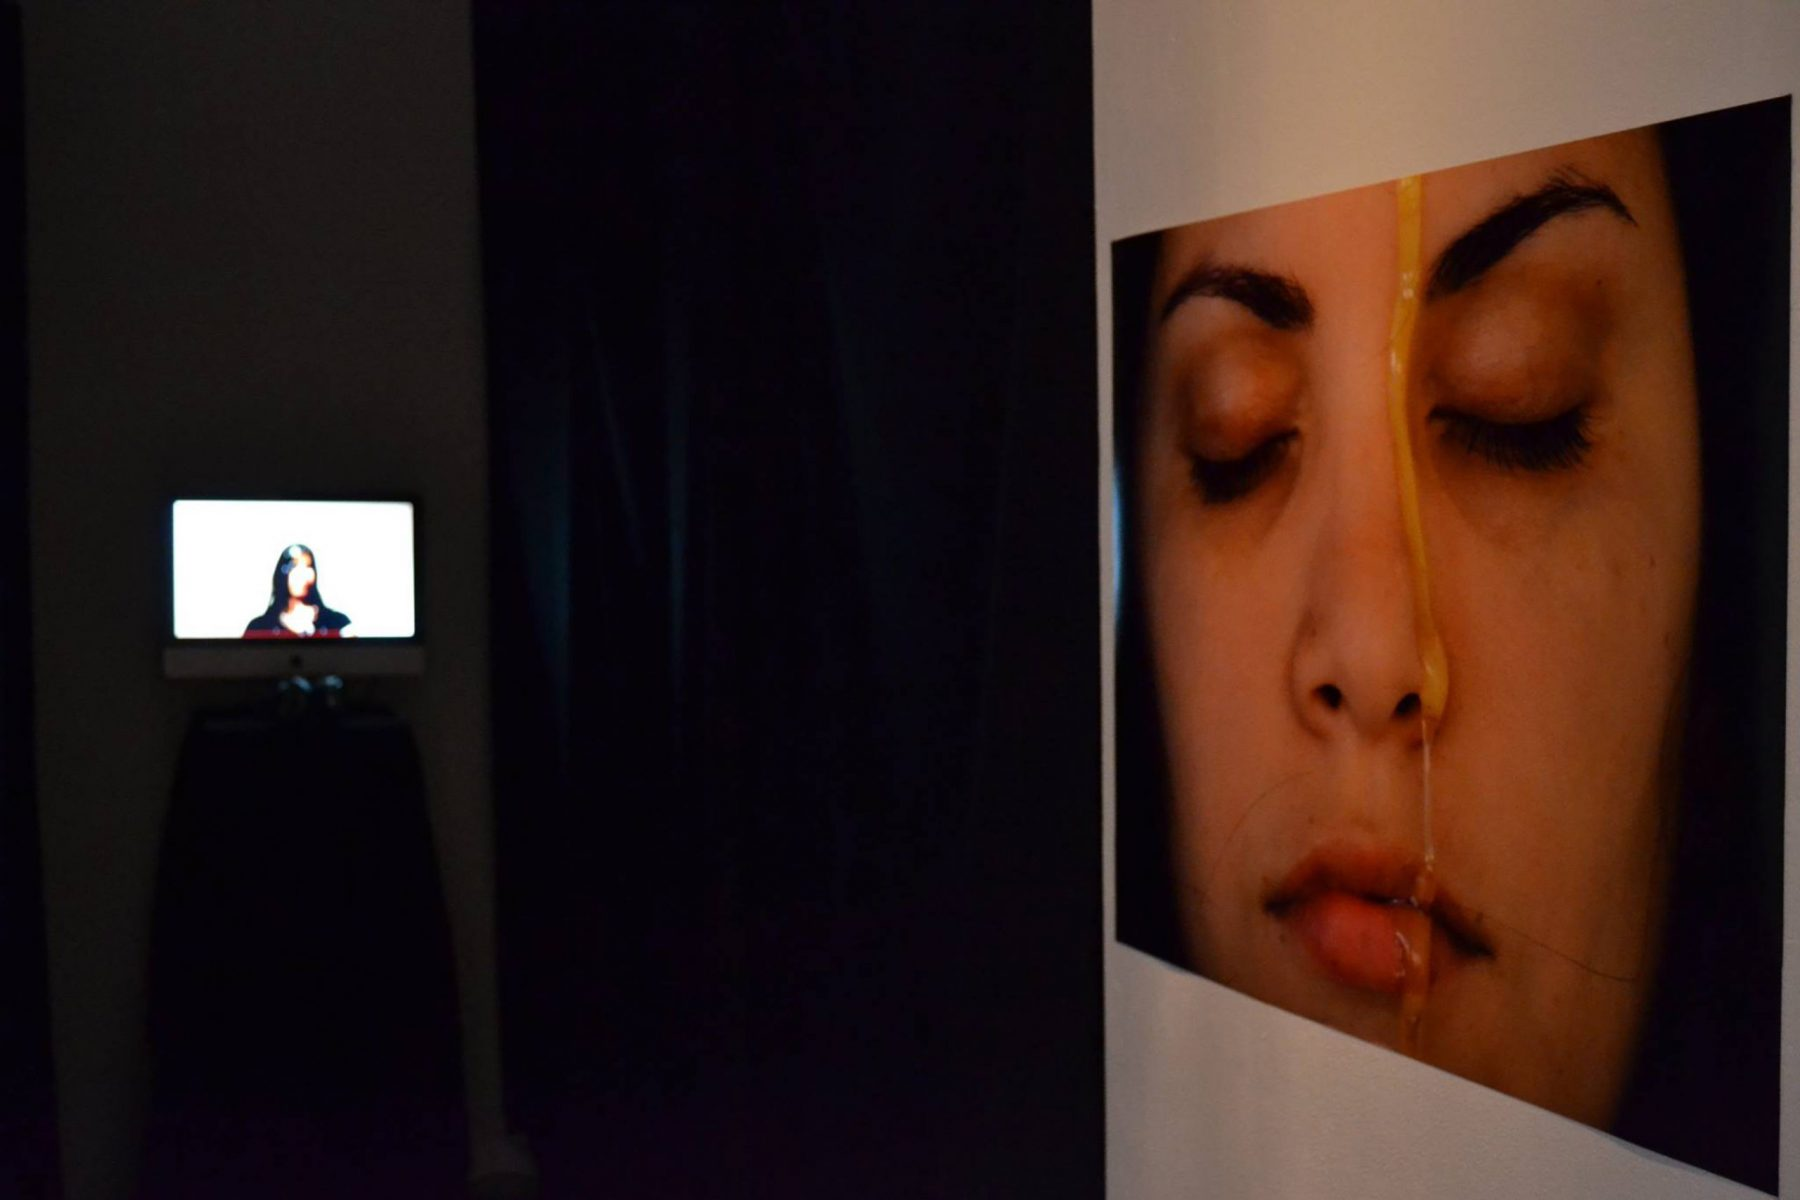 3. A drop of honey, 2013 - Performance, Opening (Naivy Perez)